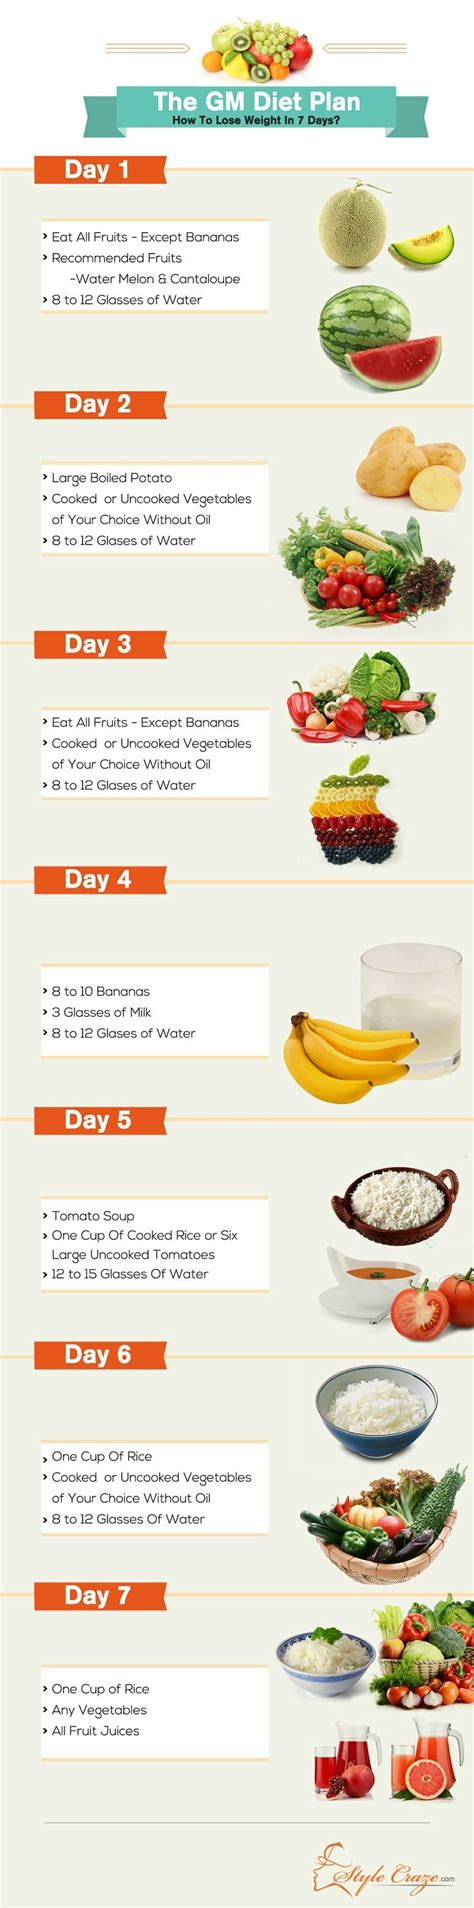 Crash Diet by Crash Diet Specialkdiet Weight Loss Exercising